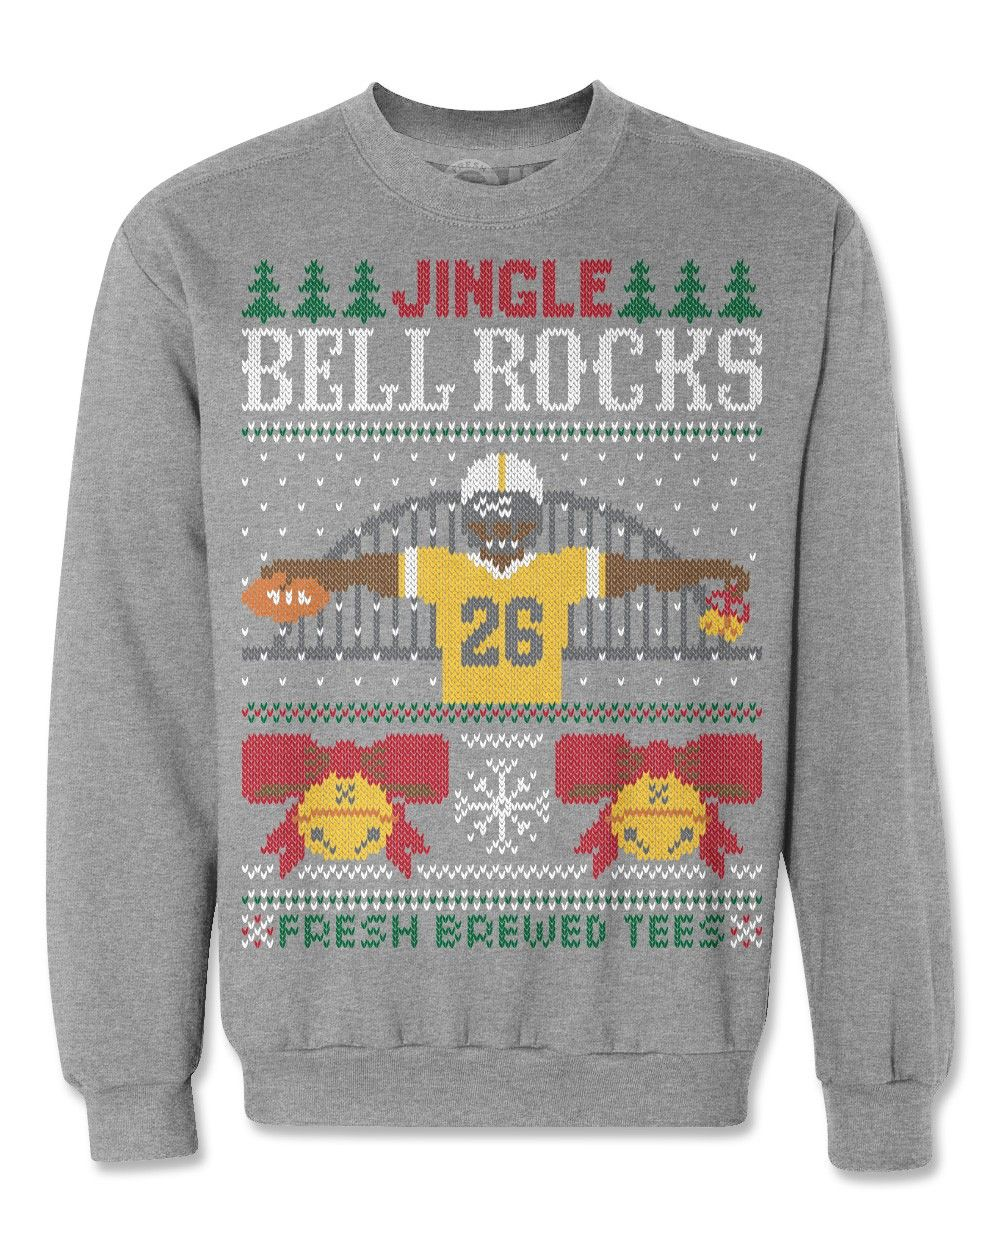 Le'Veon Bell Ugly Christmas Sweatshirt | Steelers and Pirates and ...